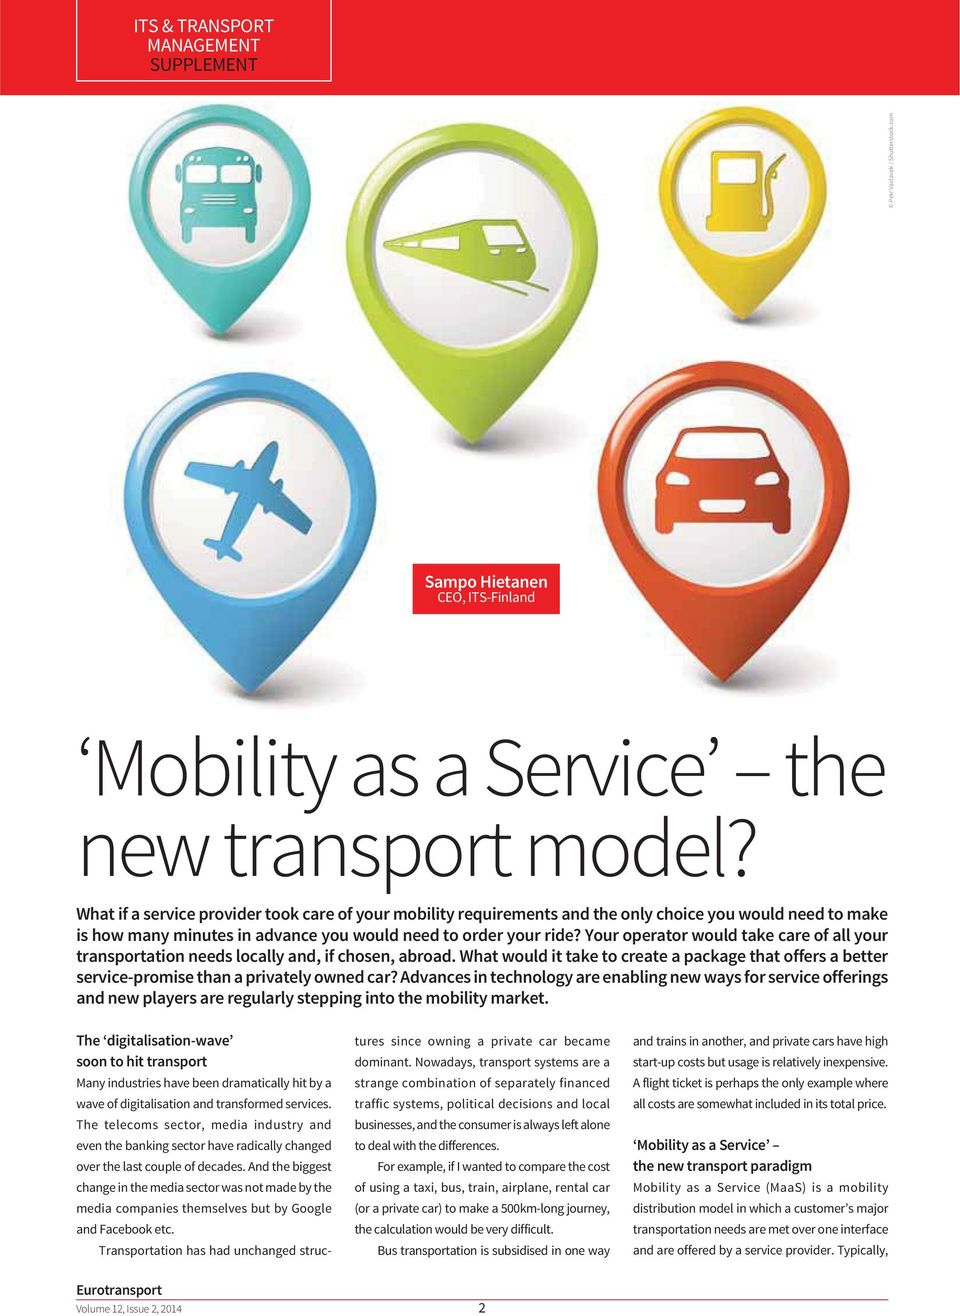 Your operator would take care of all your transportation needs locally and, if chosen, abroad. What would it take to create a package that offers a better service-promise than a privately owned car?